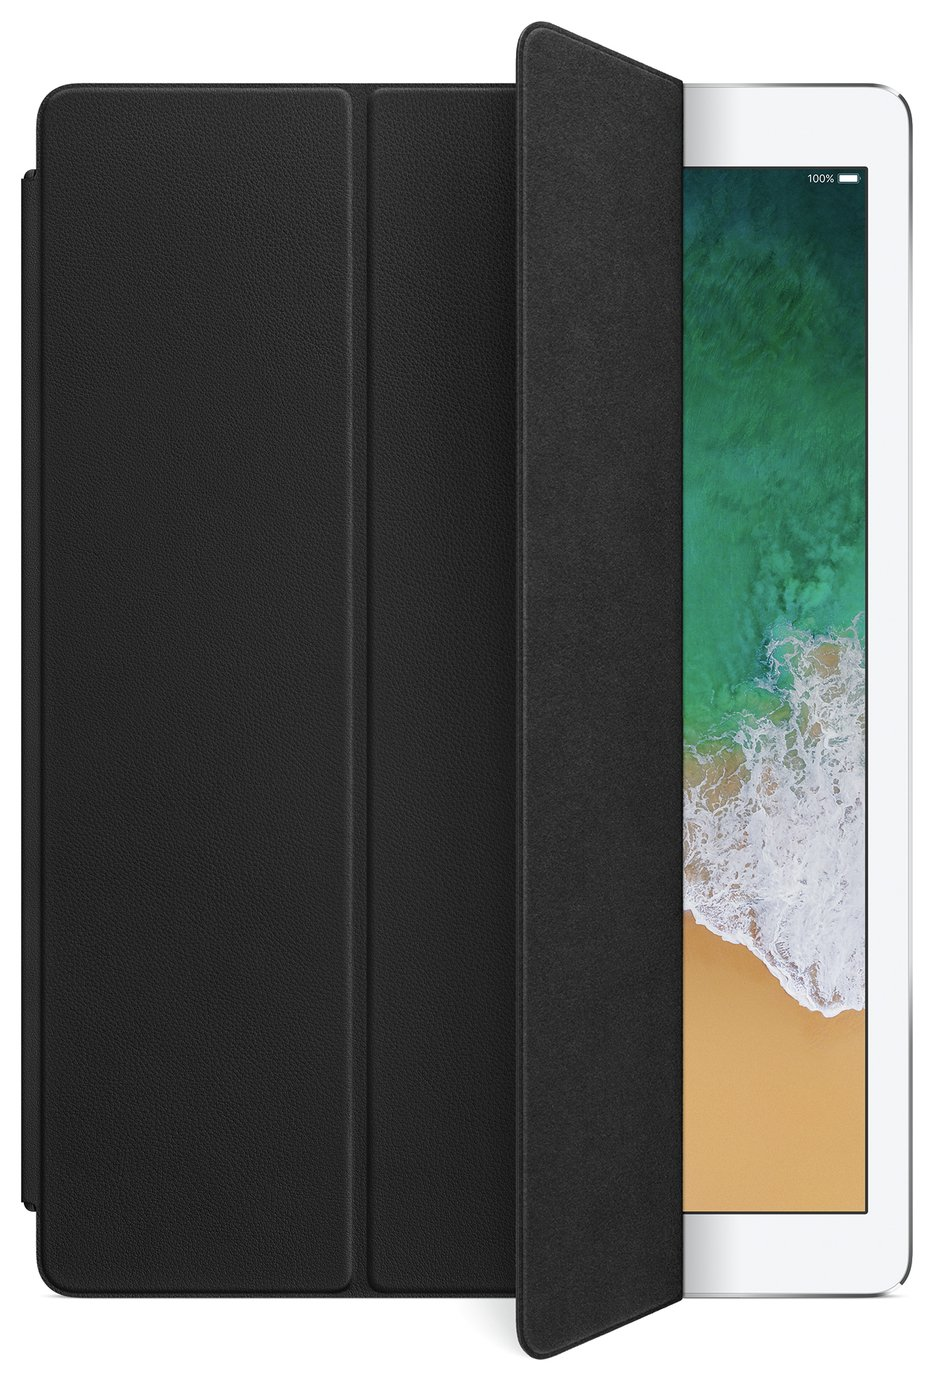 Image of Apple 12.9 Inch iPad Pro Leather Smart Cover - Black